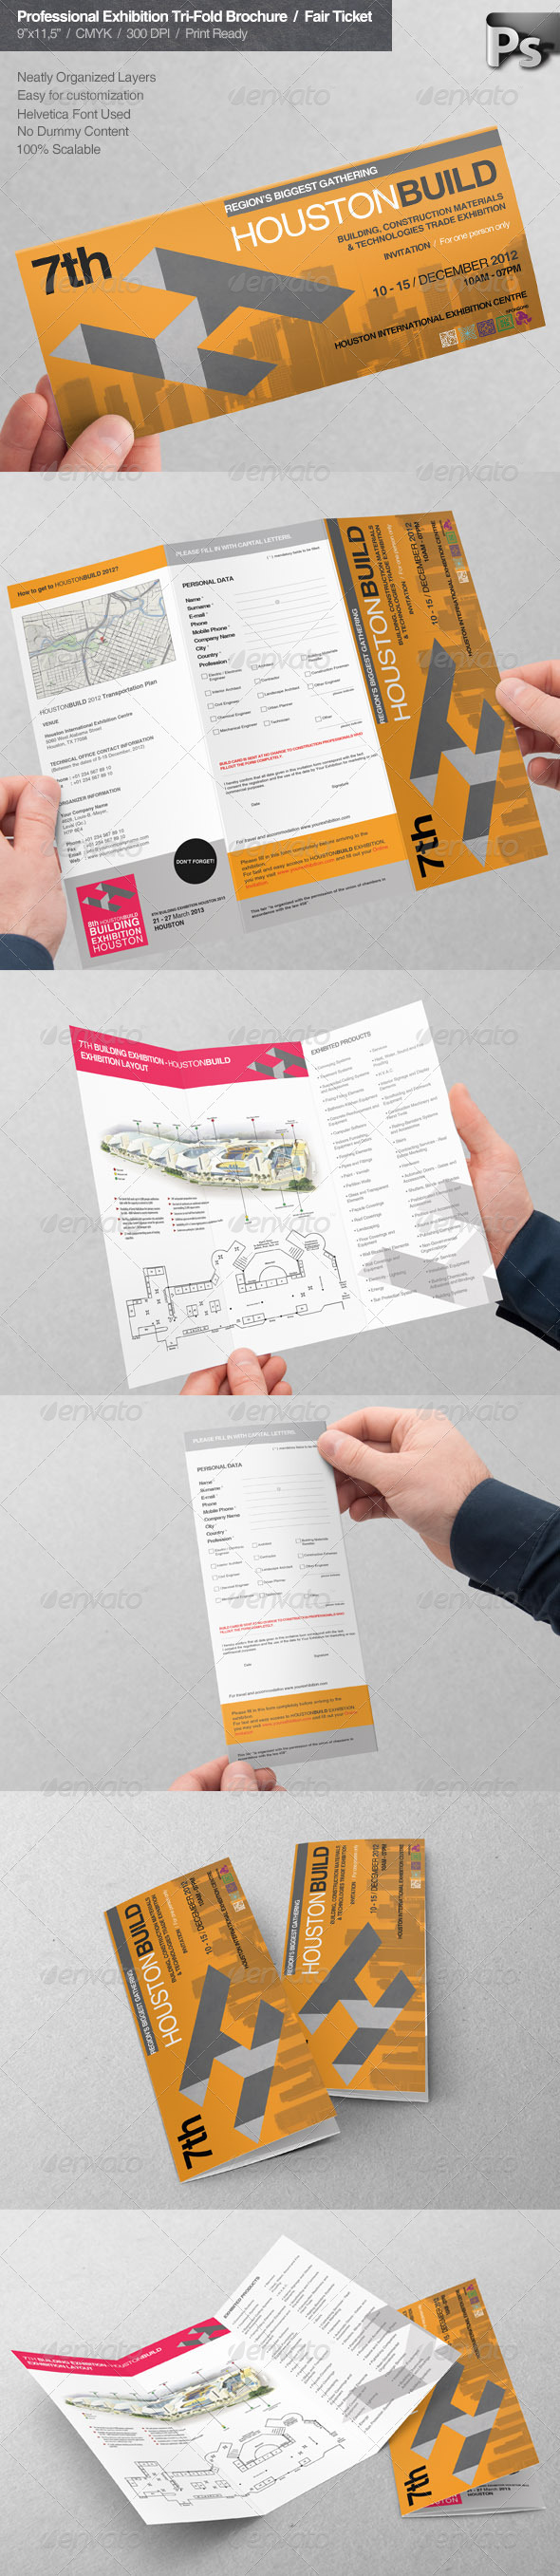 Professional Exhibition Tri-Fold Brochure Ticket